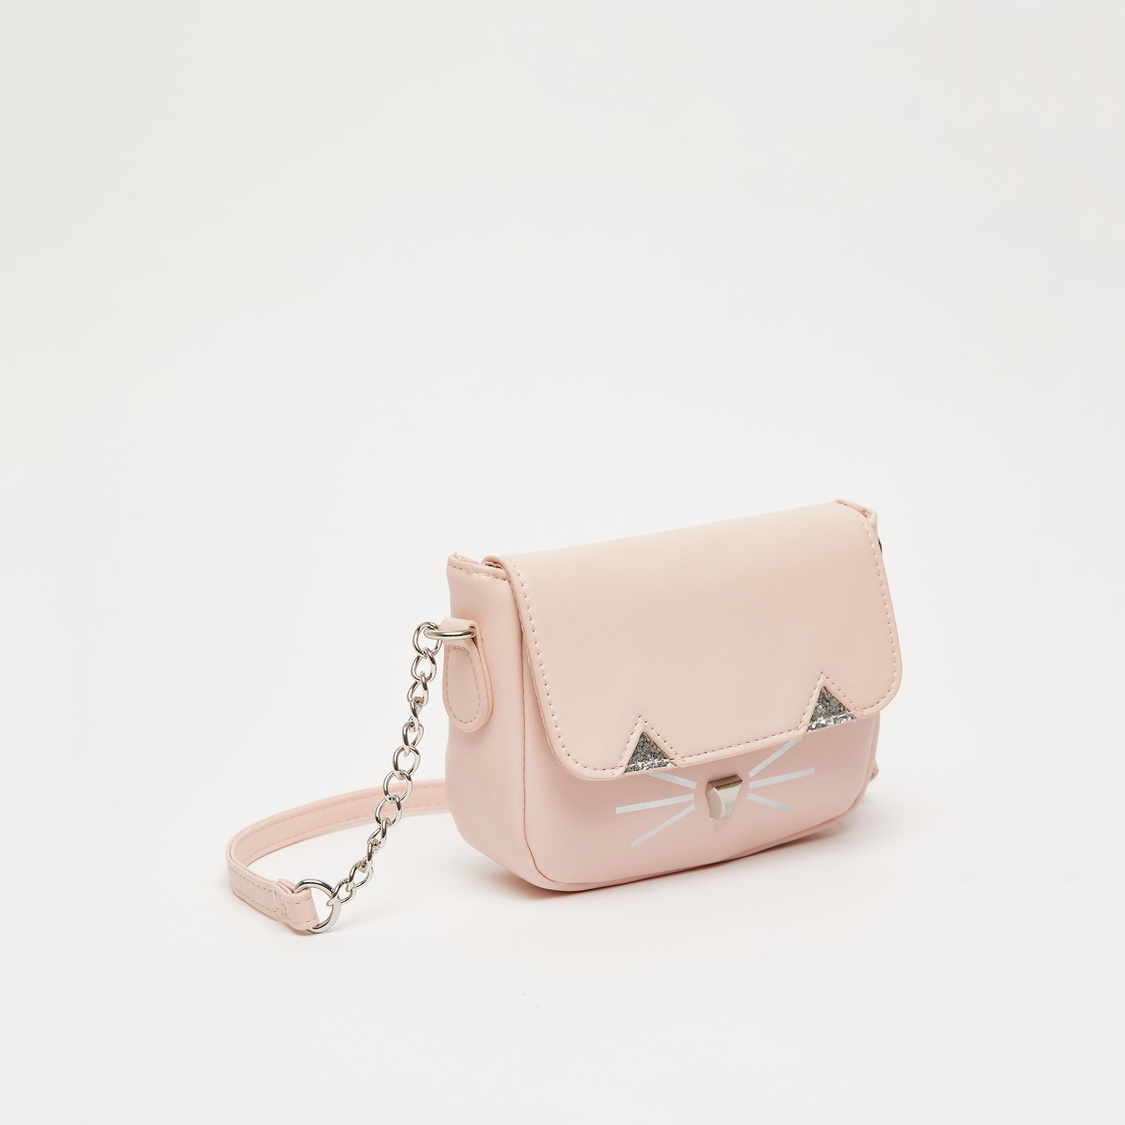 Textured Crossbody Bag with Adjustable Strap and Magnetic Snap Closure